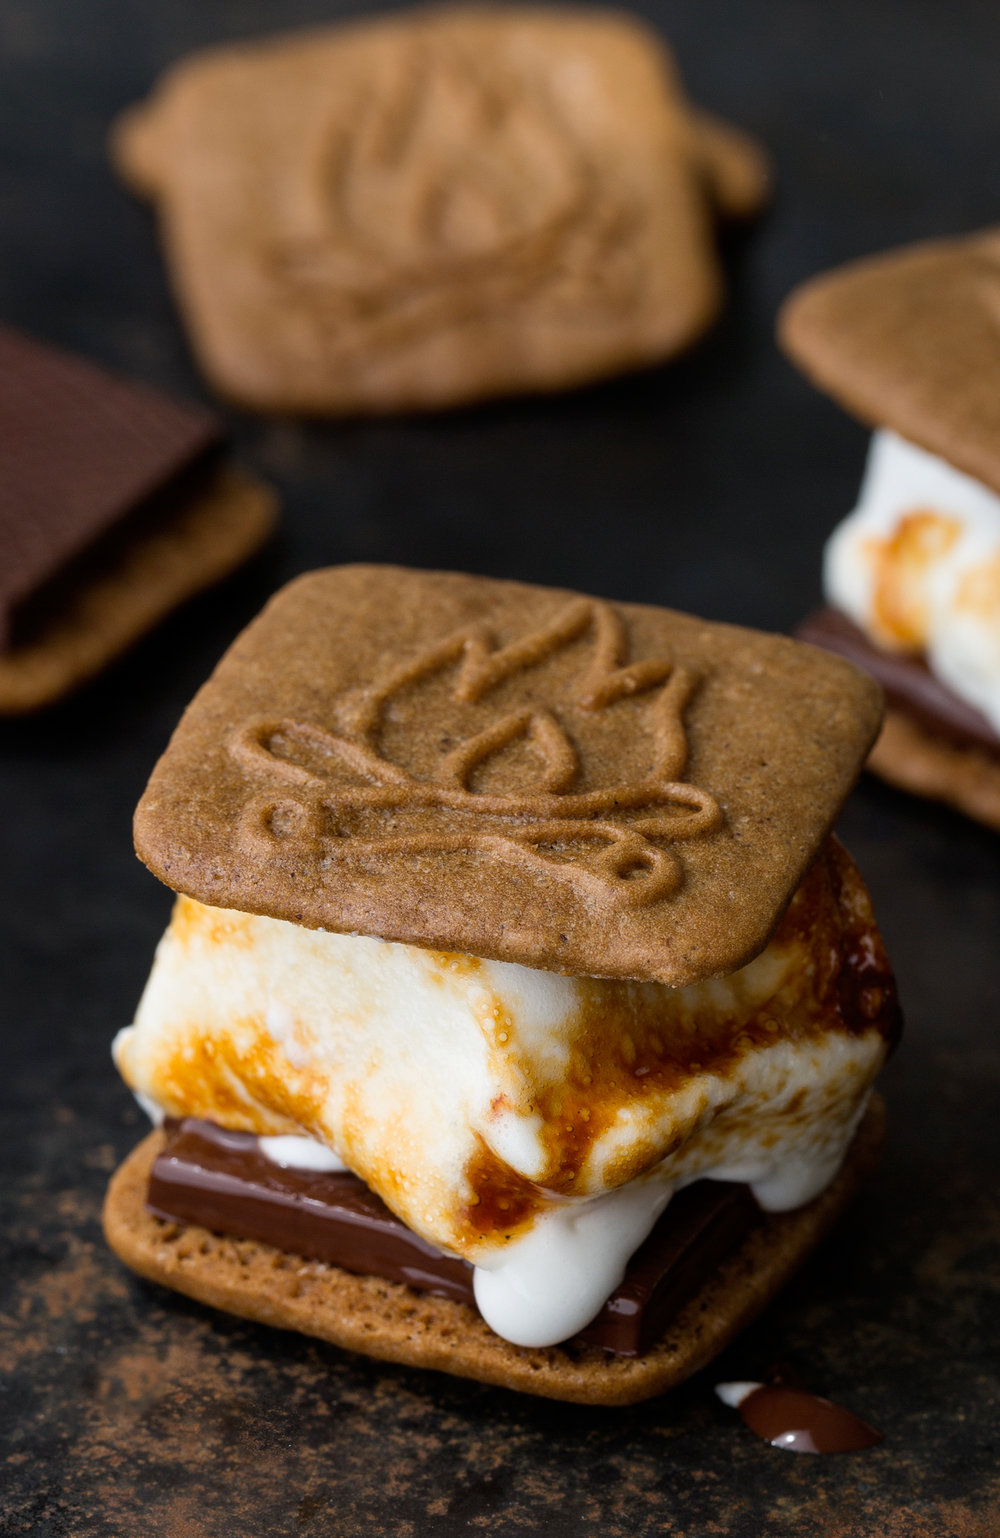 Product-Smores.jpg